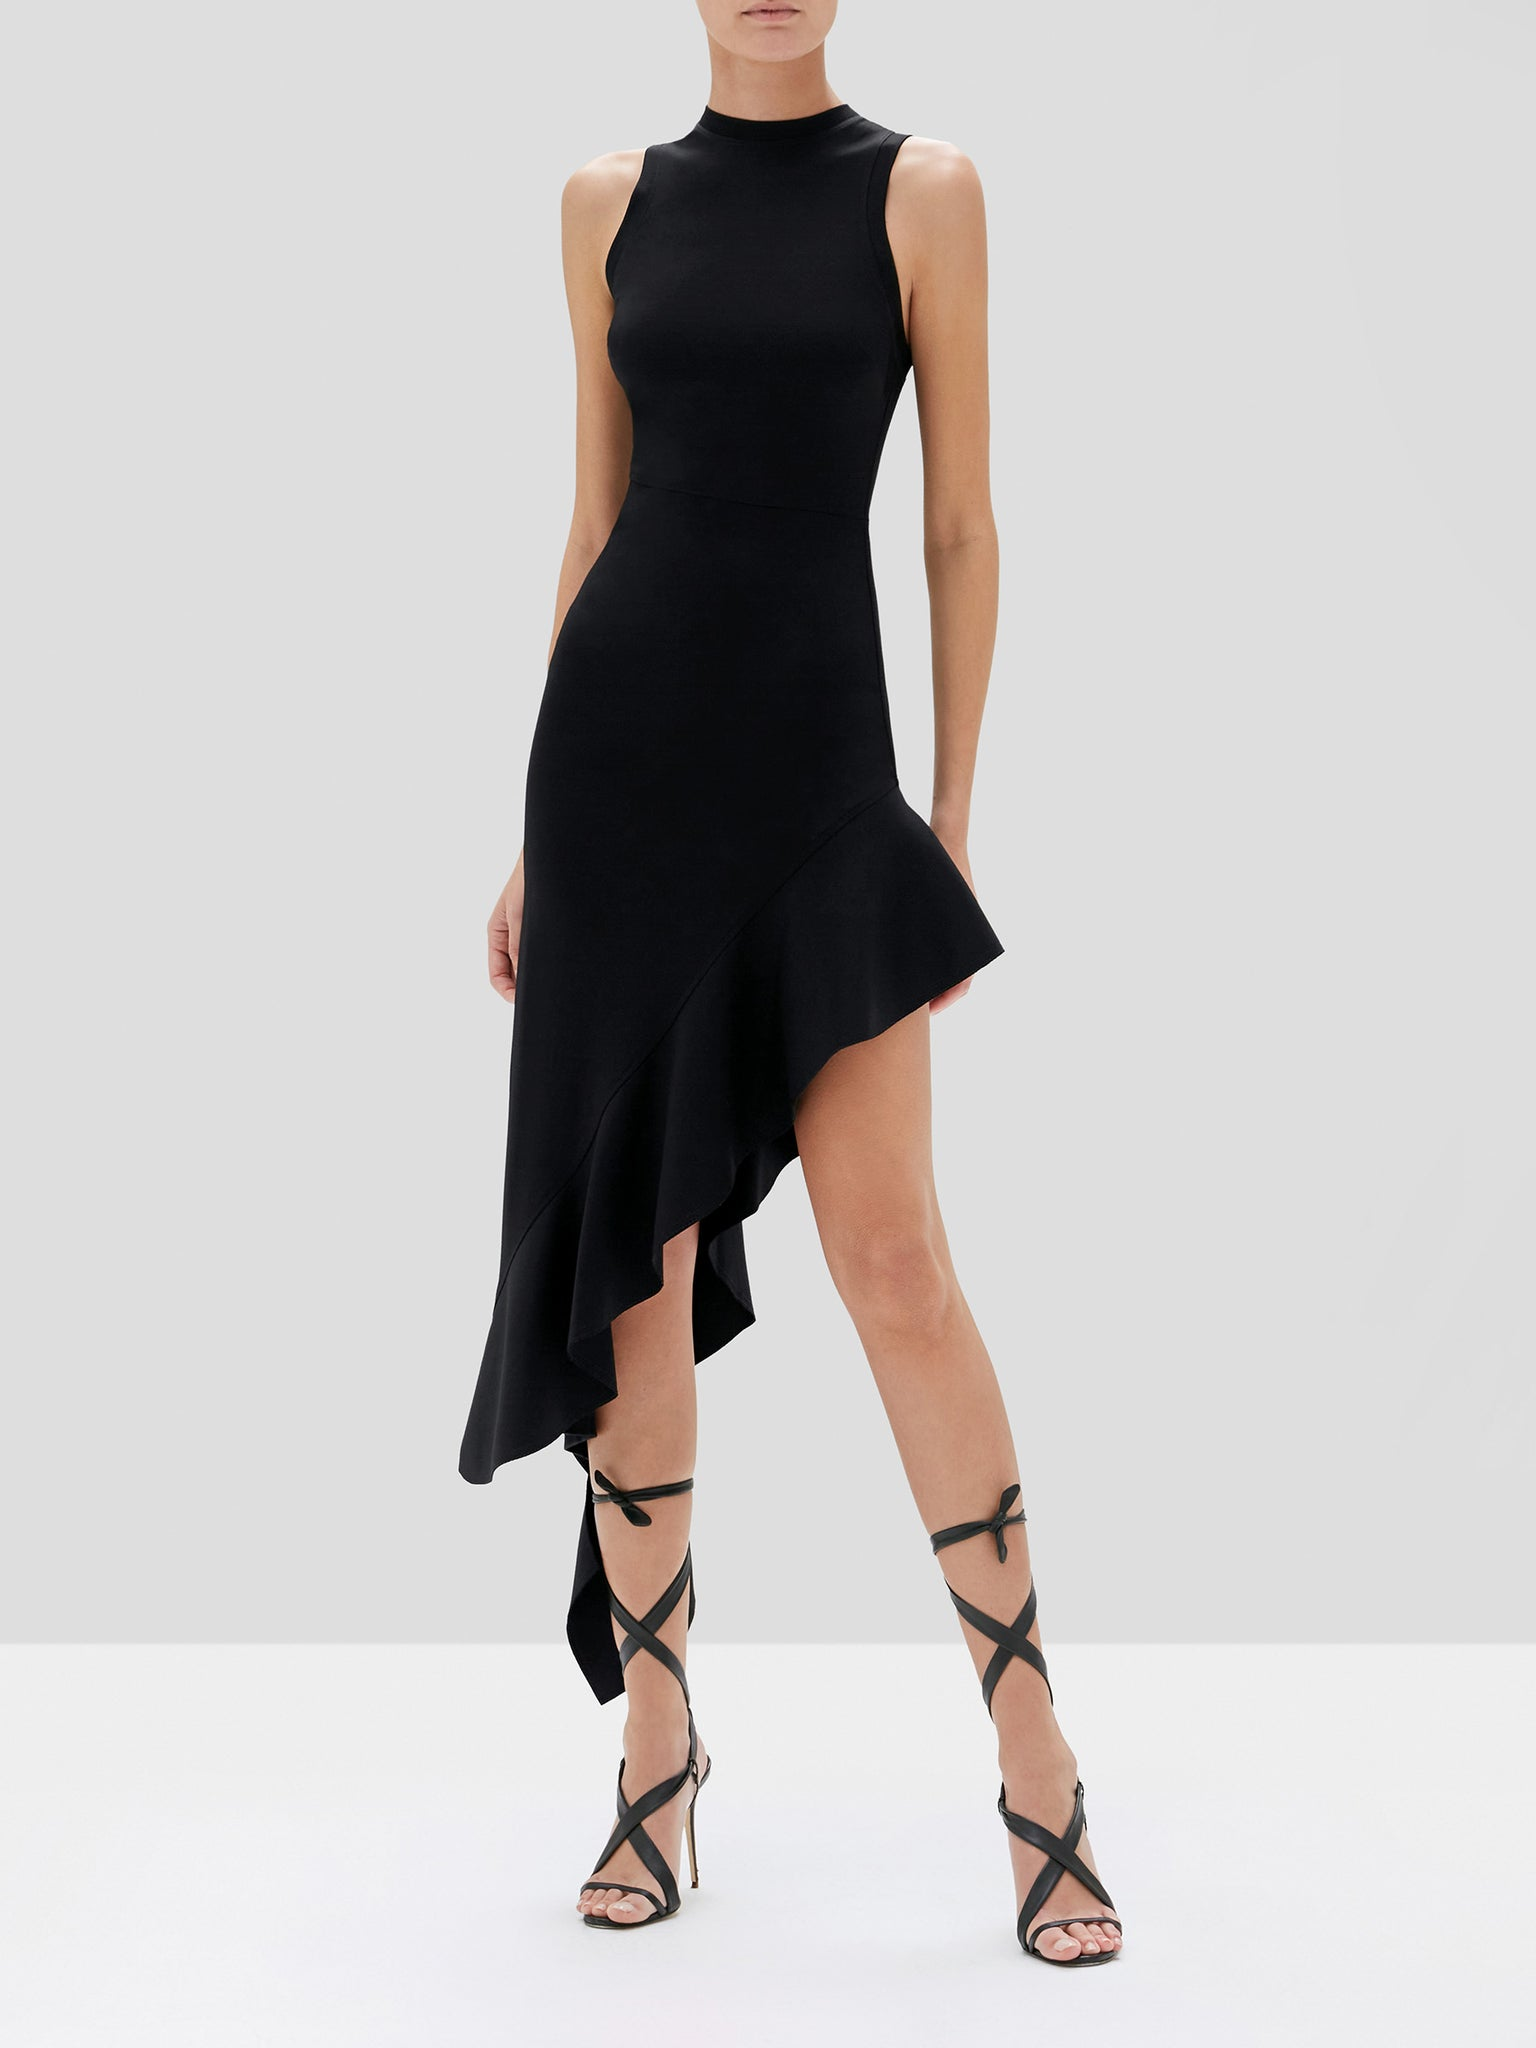 adva dress in black